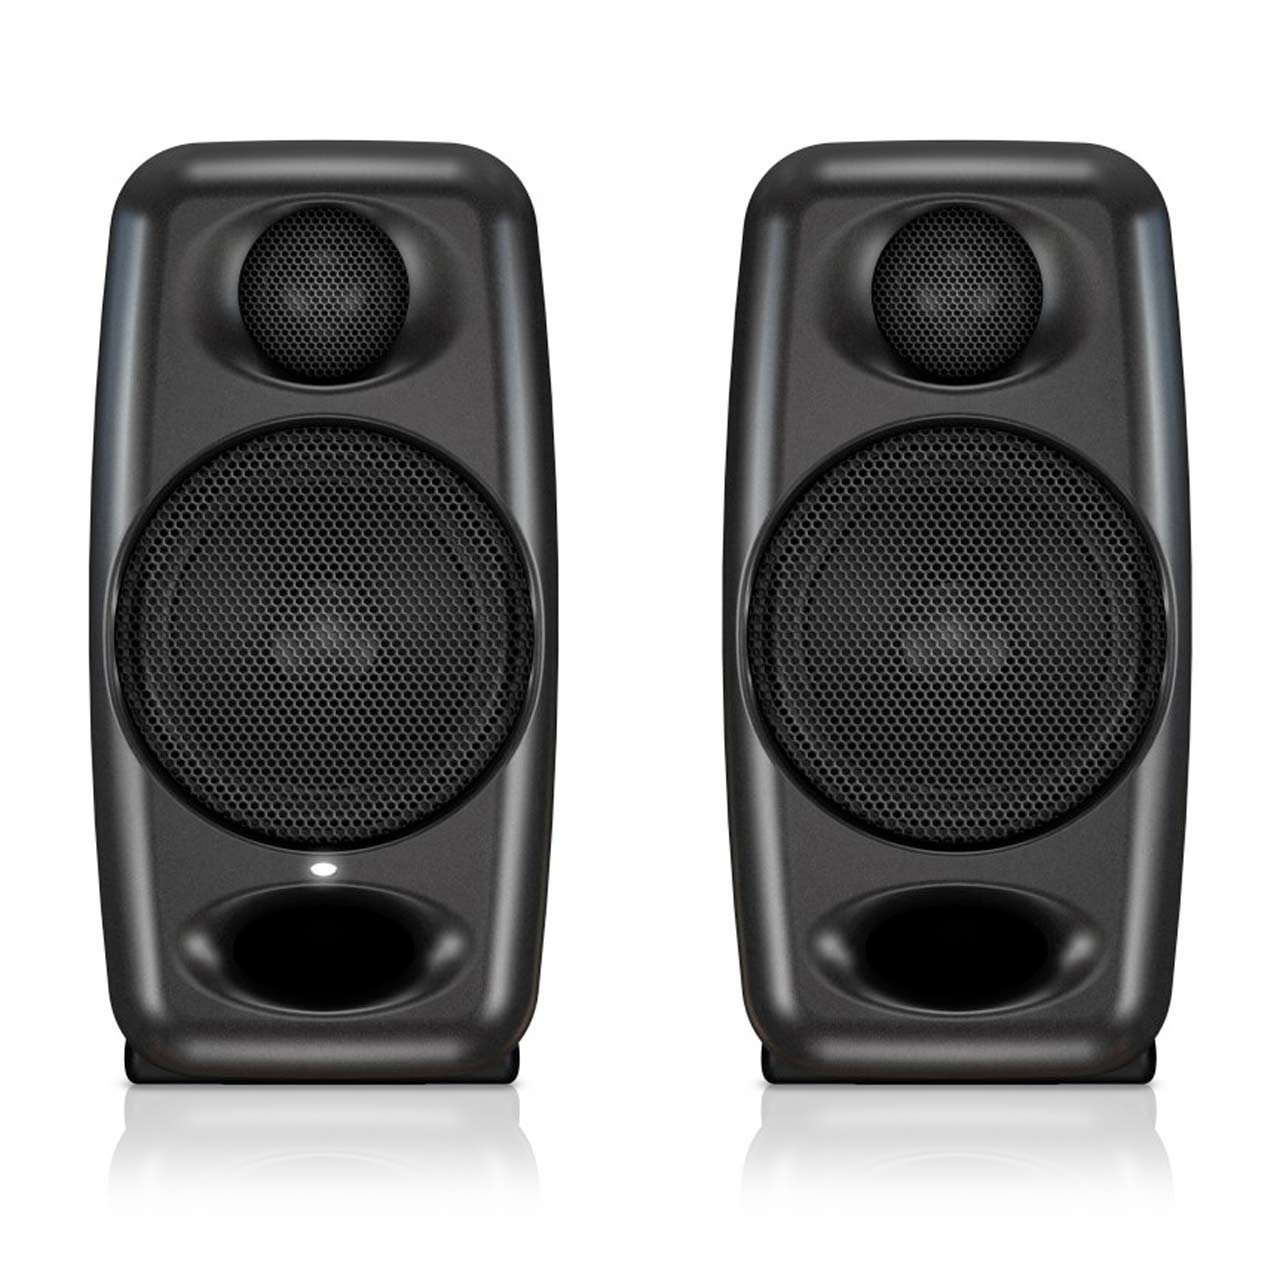 Active Studio Monitors - IK Multimedia ILoud Micro Monitor (PAIR)